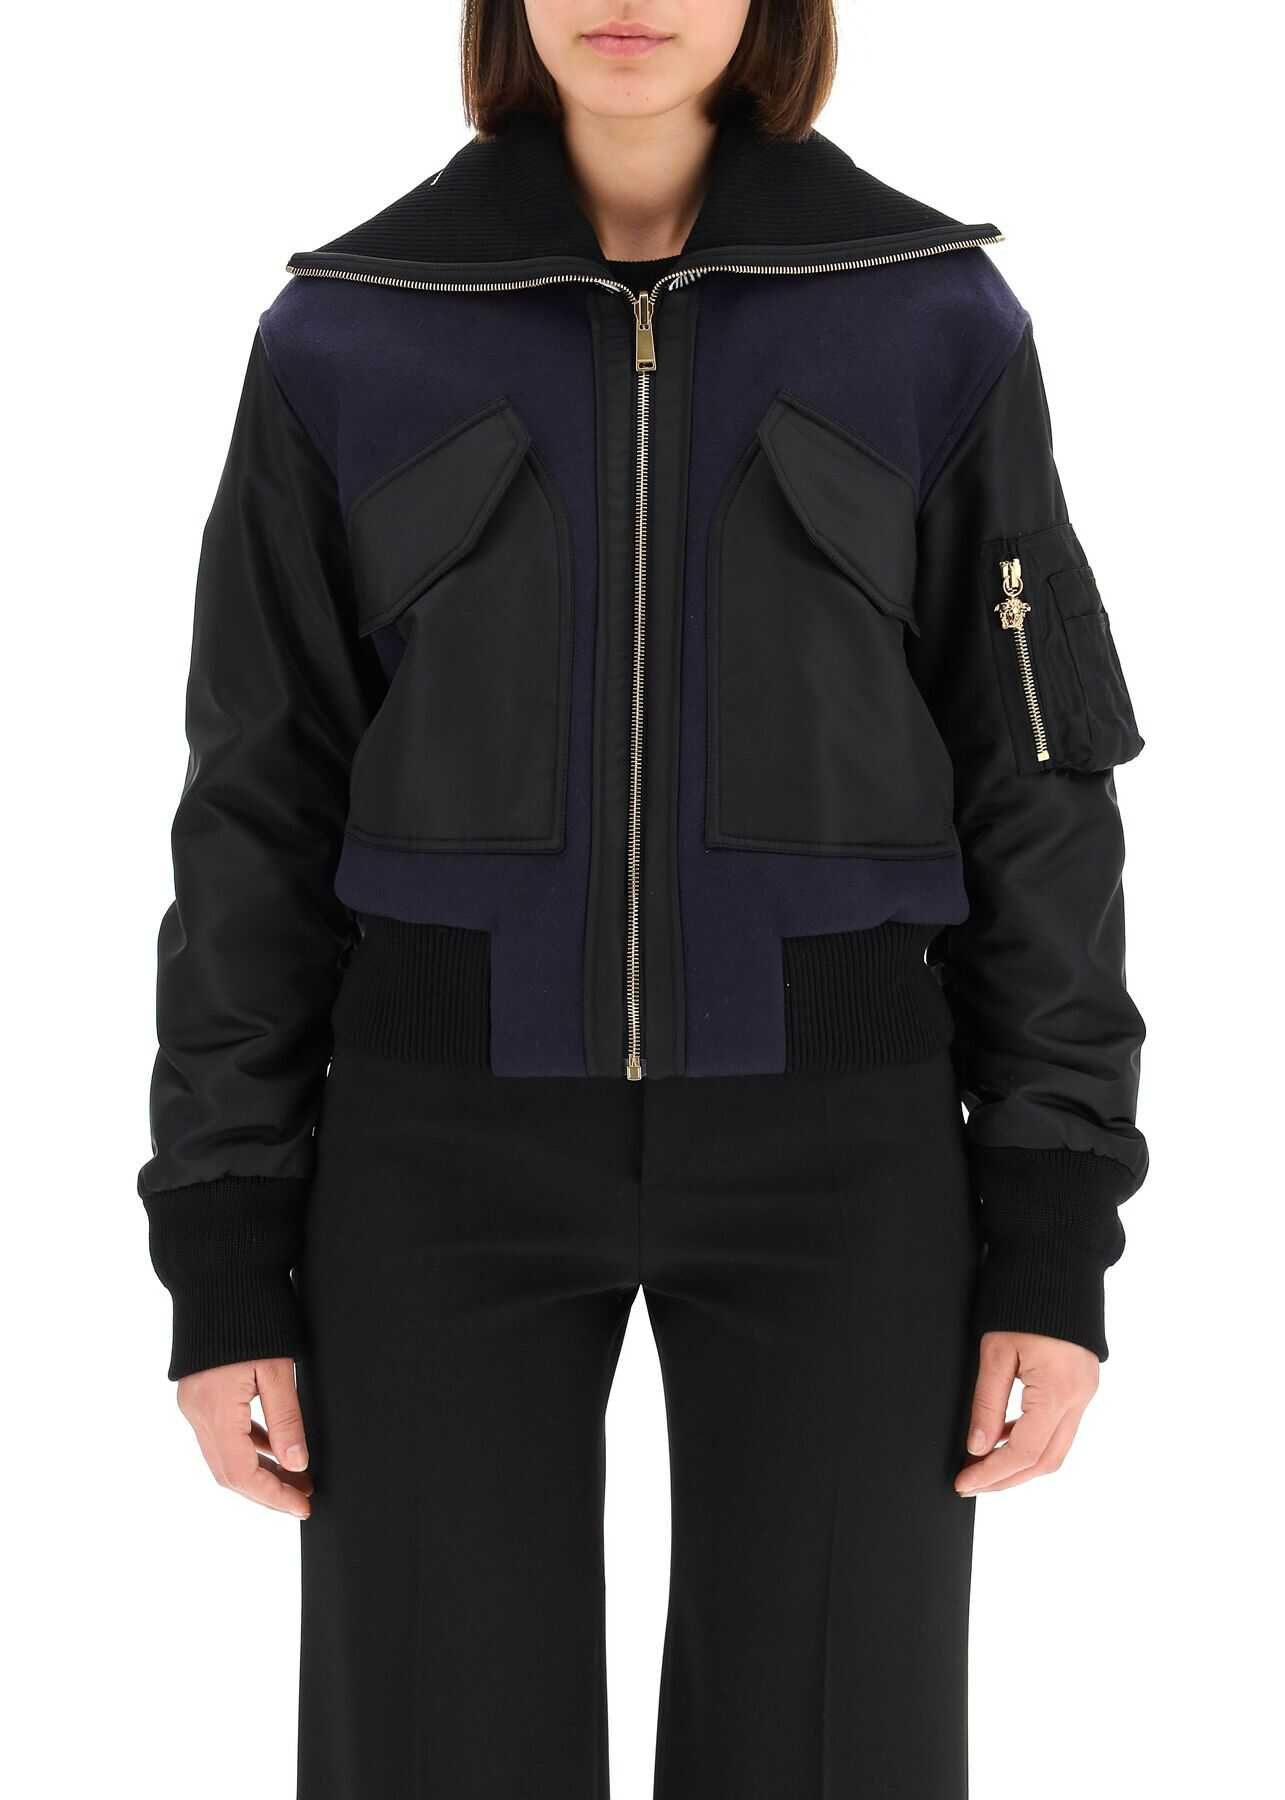 Versace Dual-Material Bomber Jacket With Logo 1001244 1A00901 BLUE BLACK image0